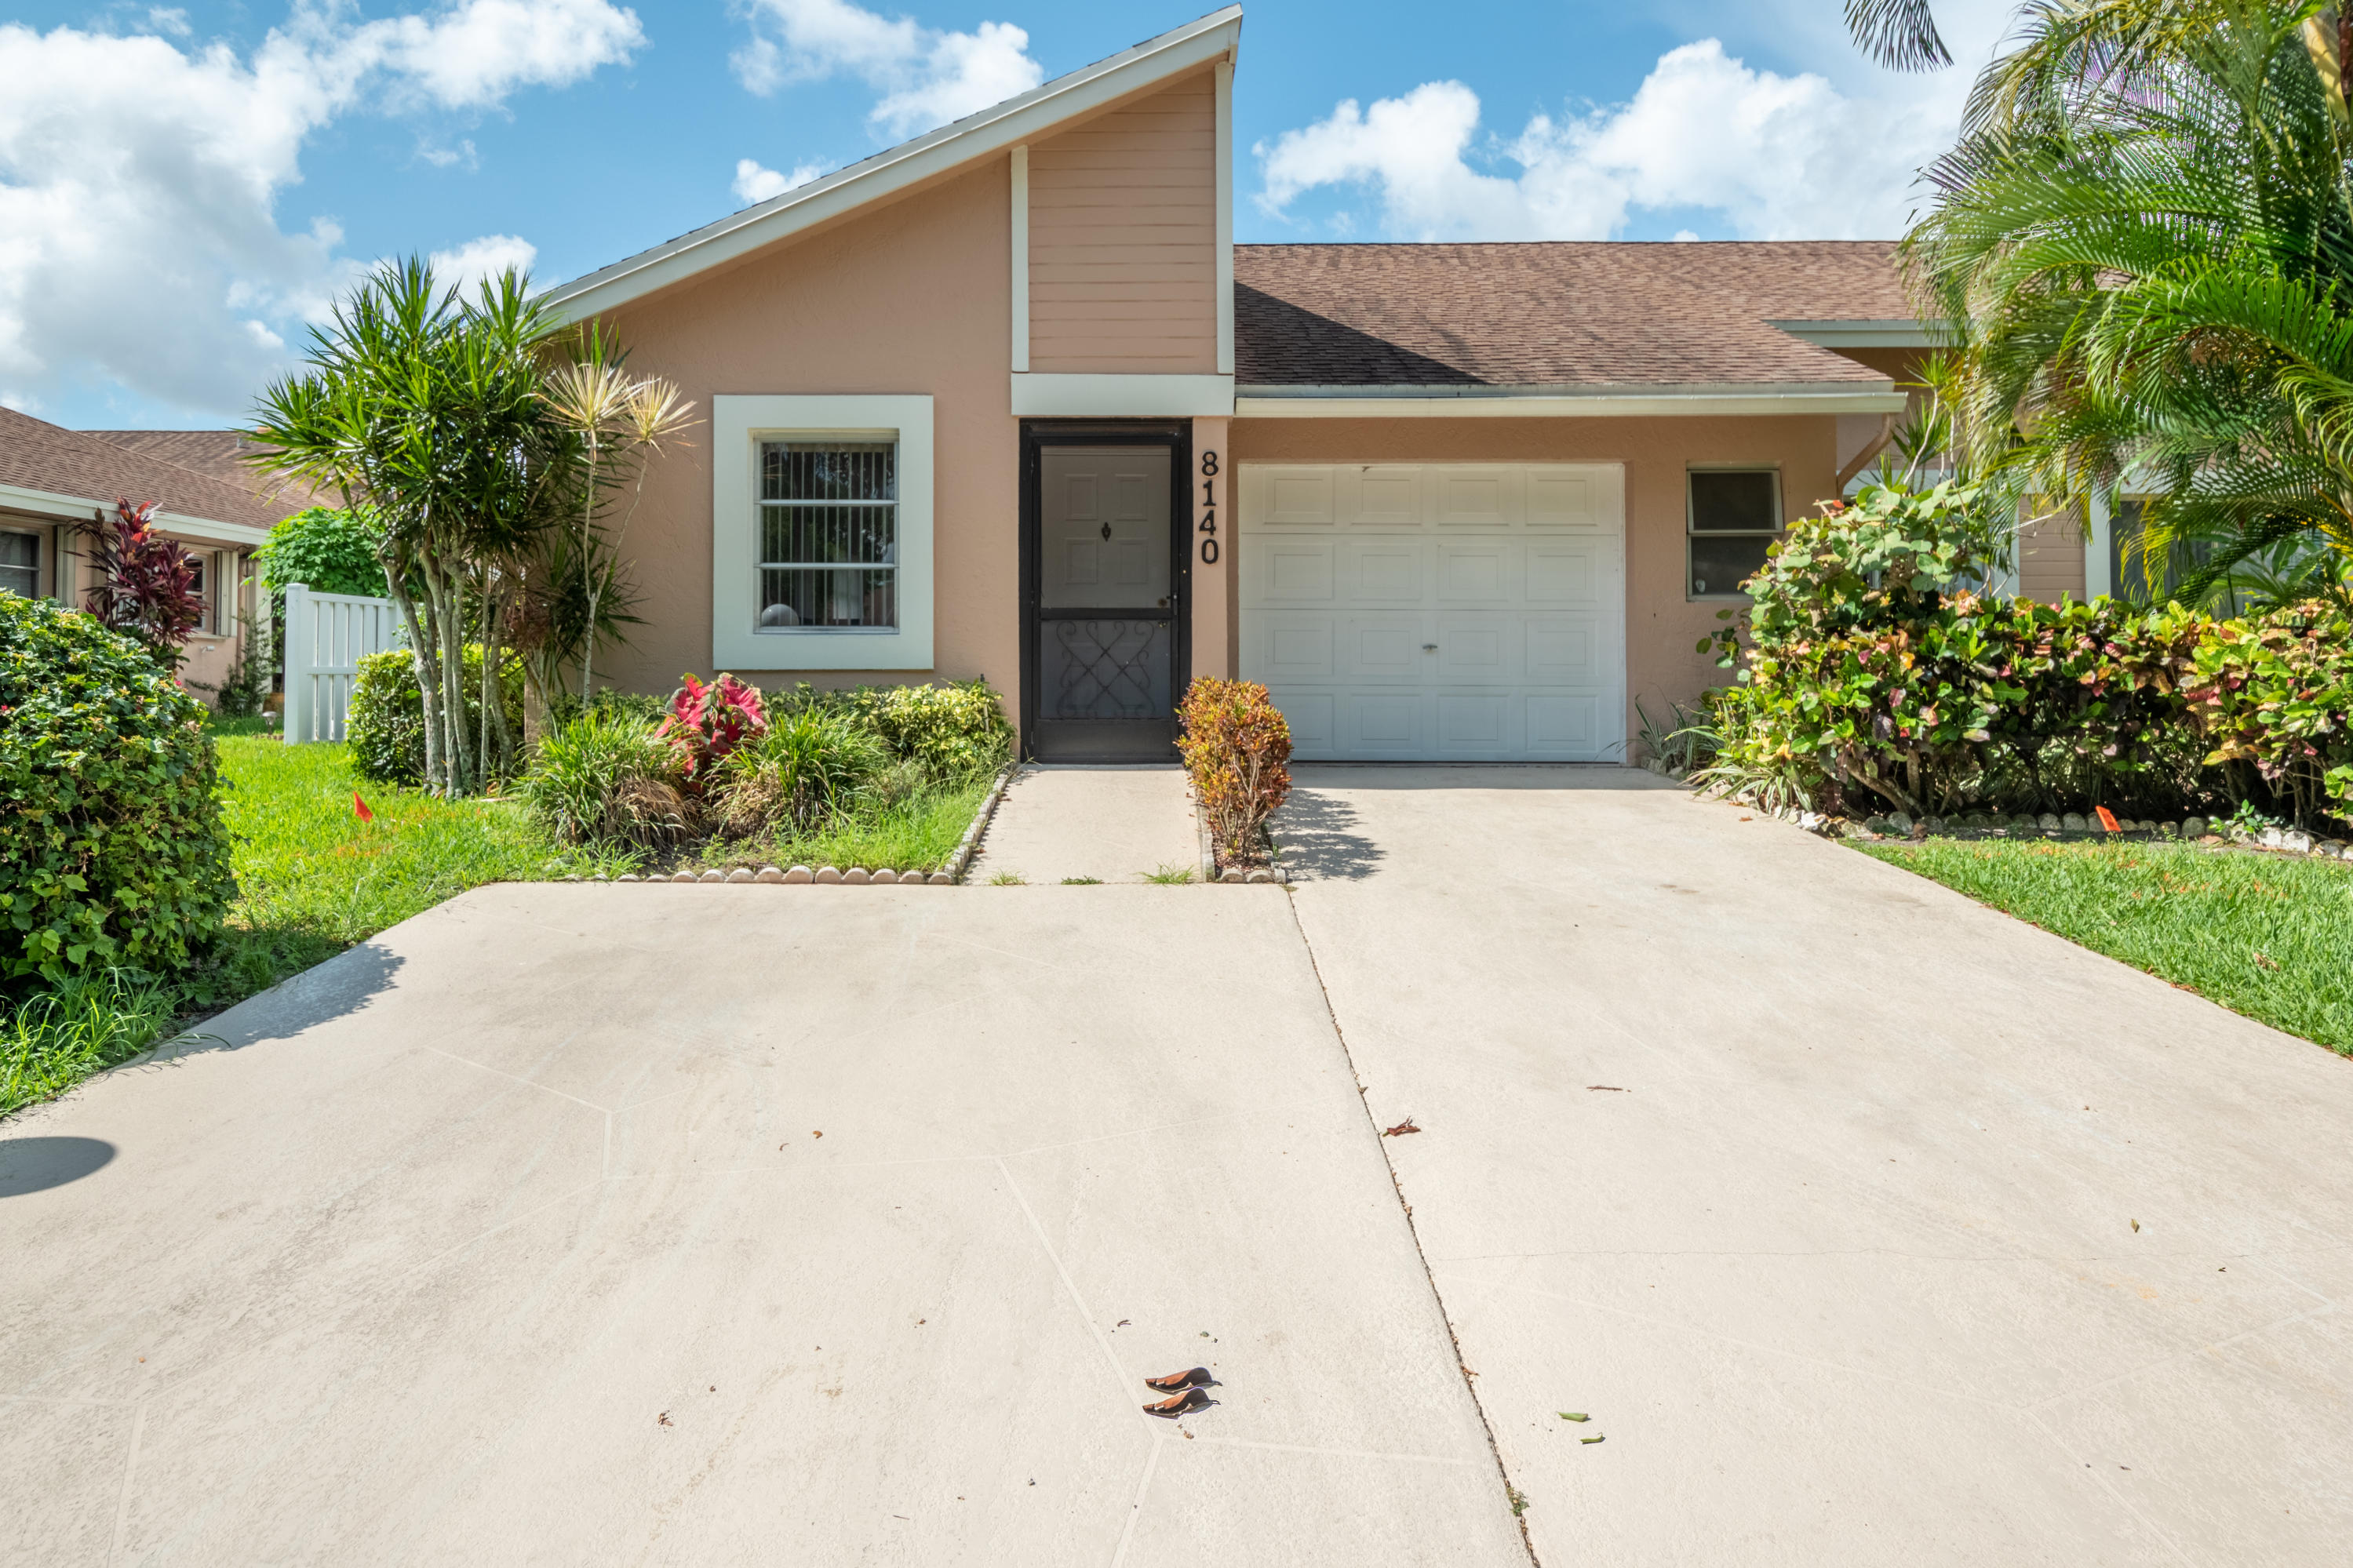 Photo of home for sale at 8140 Sweetbriar Way, Boca Raton FL